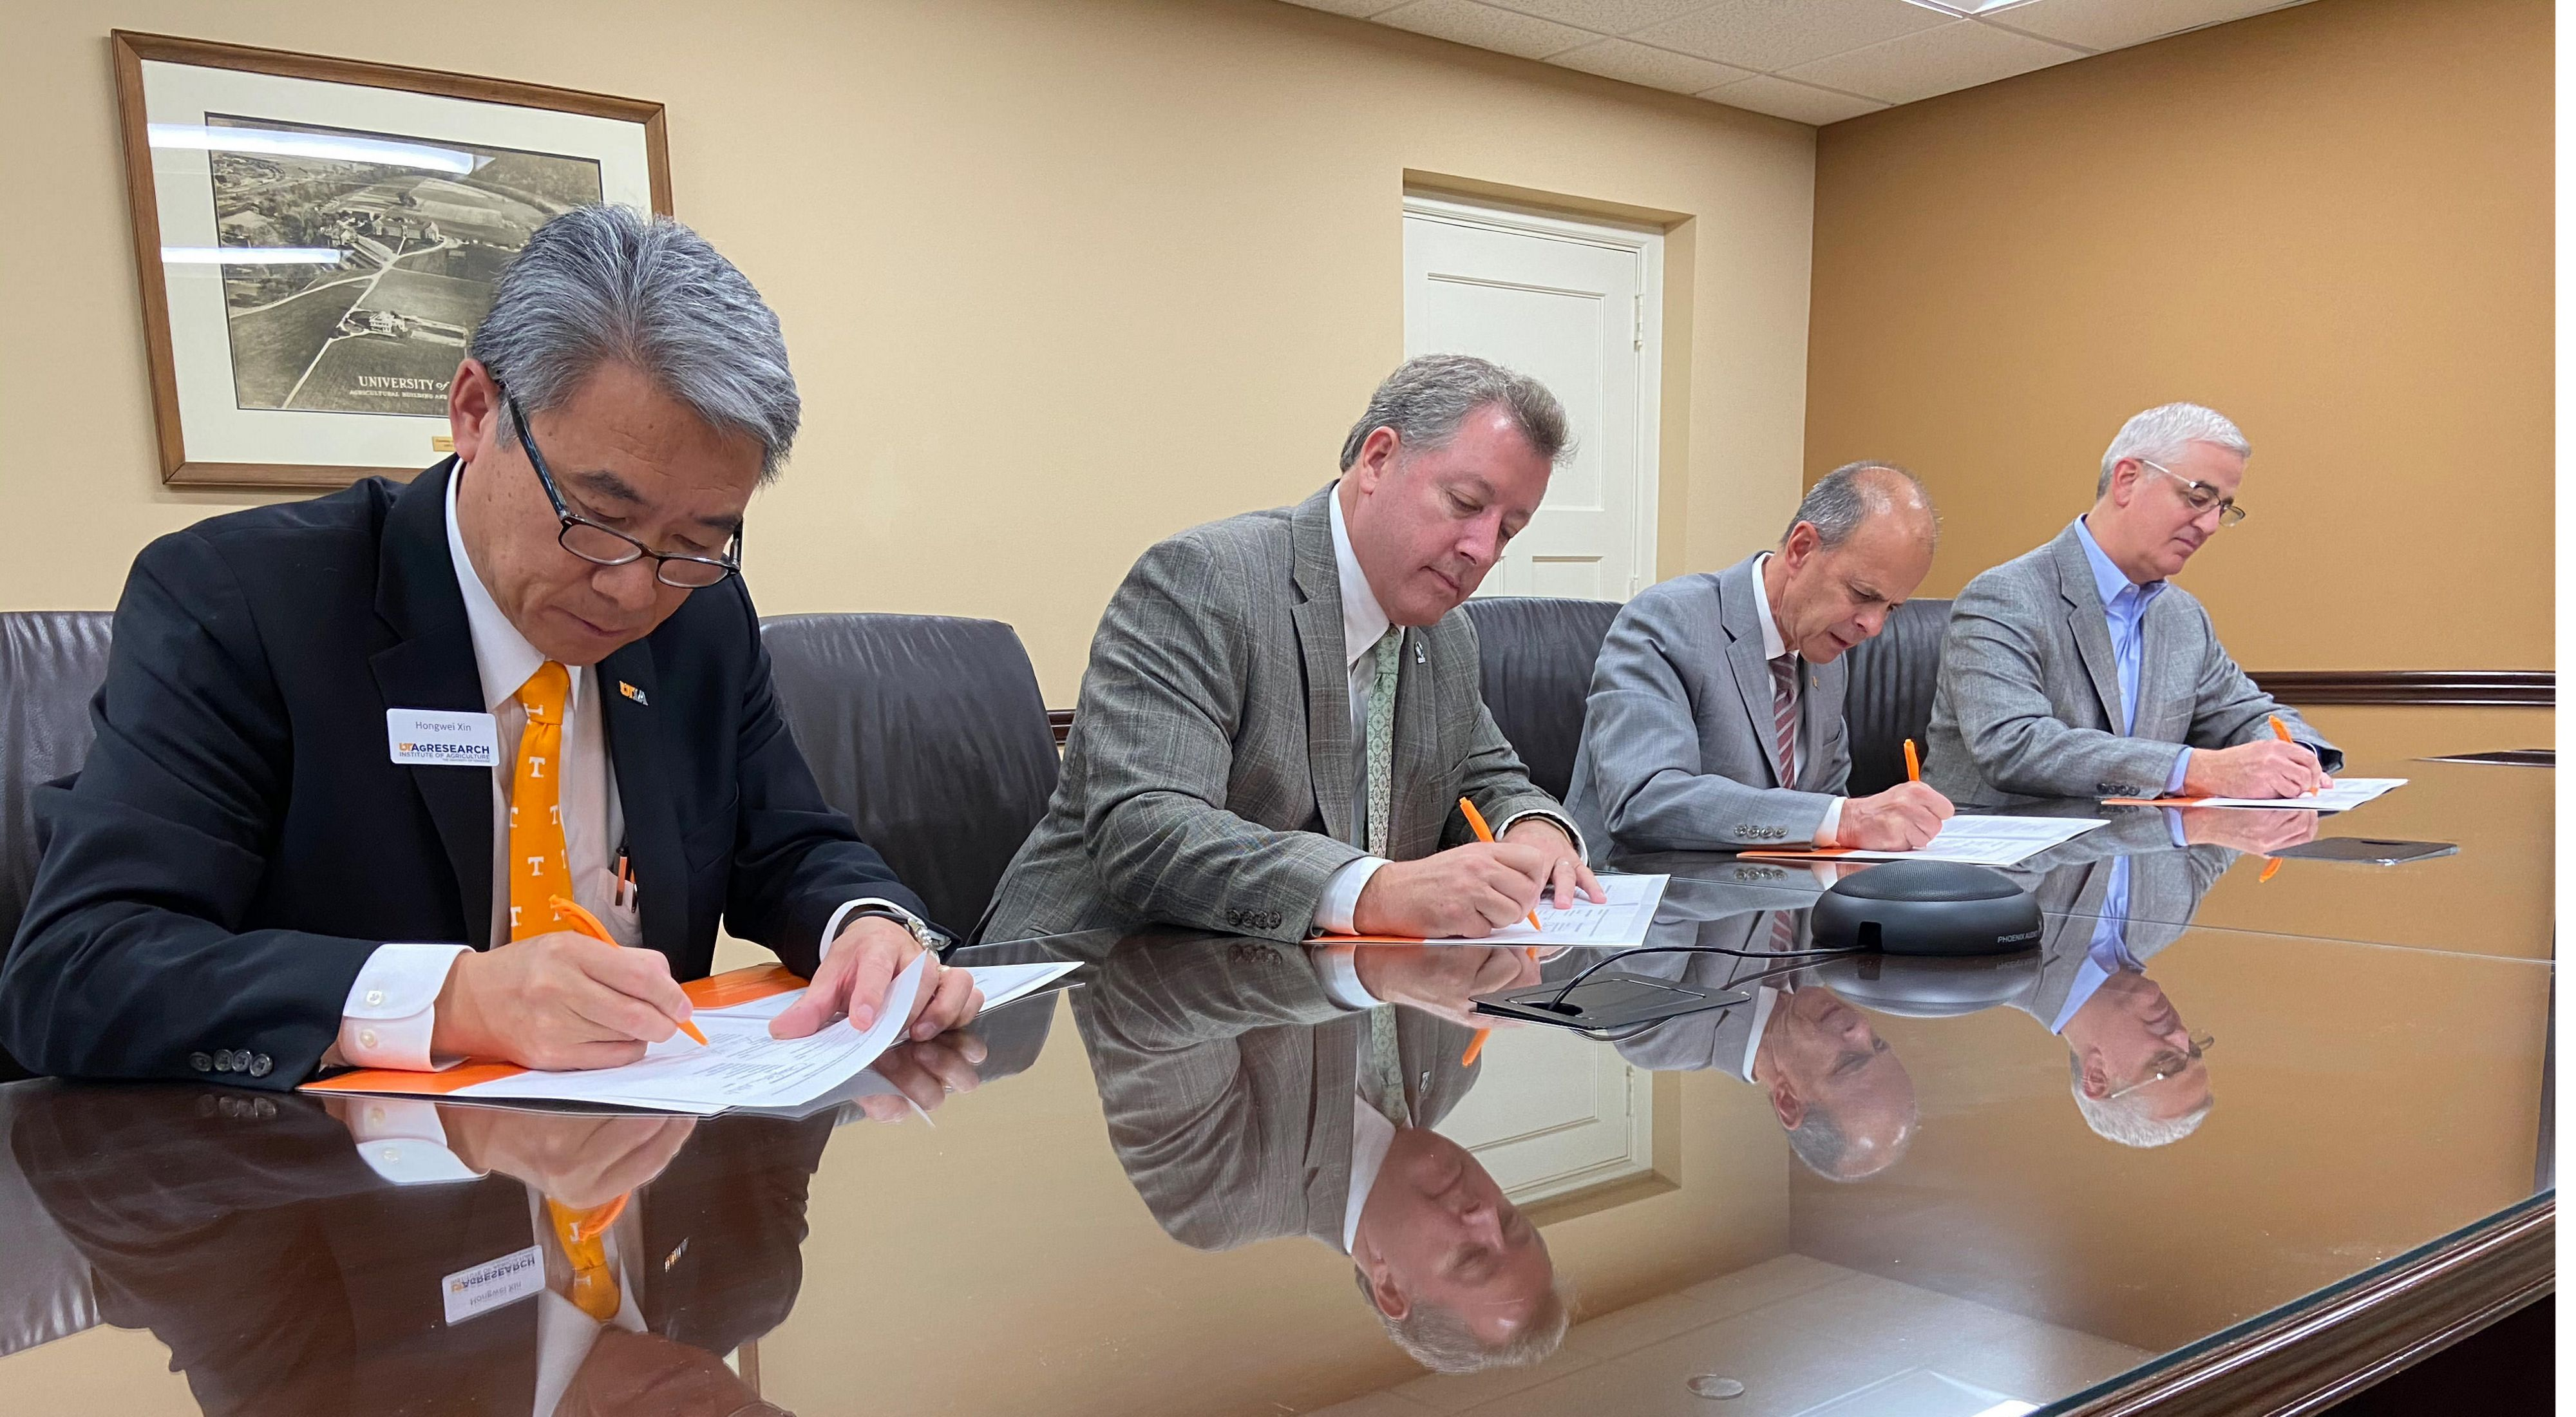 Three men sit at a table and sign papers.